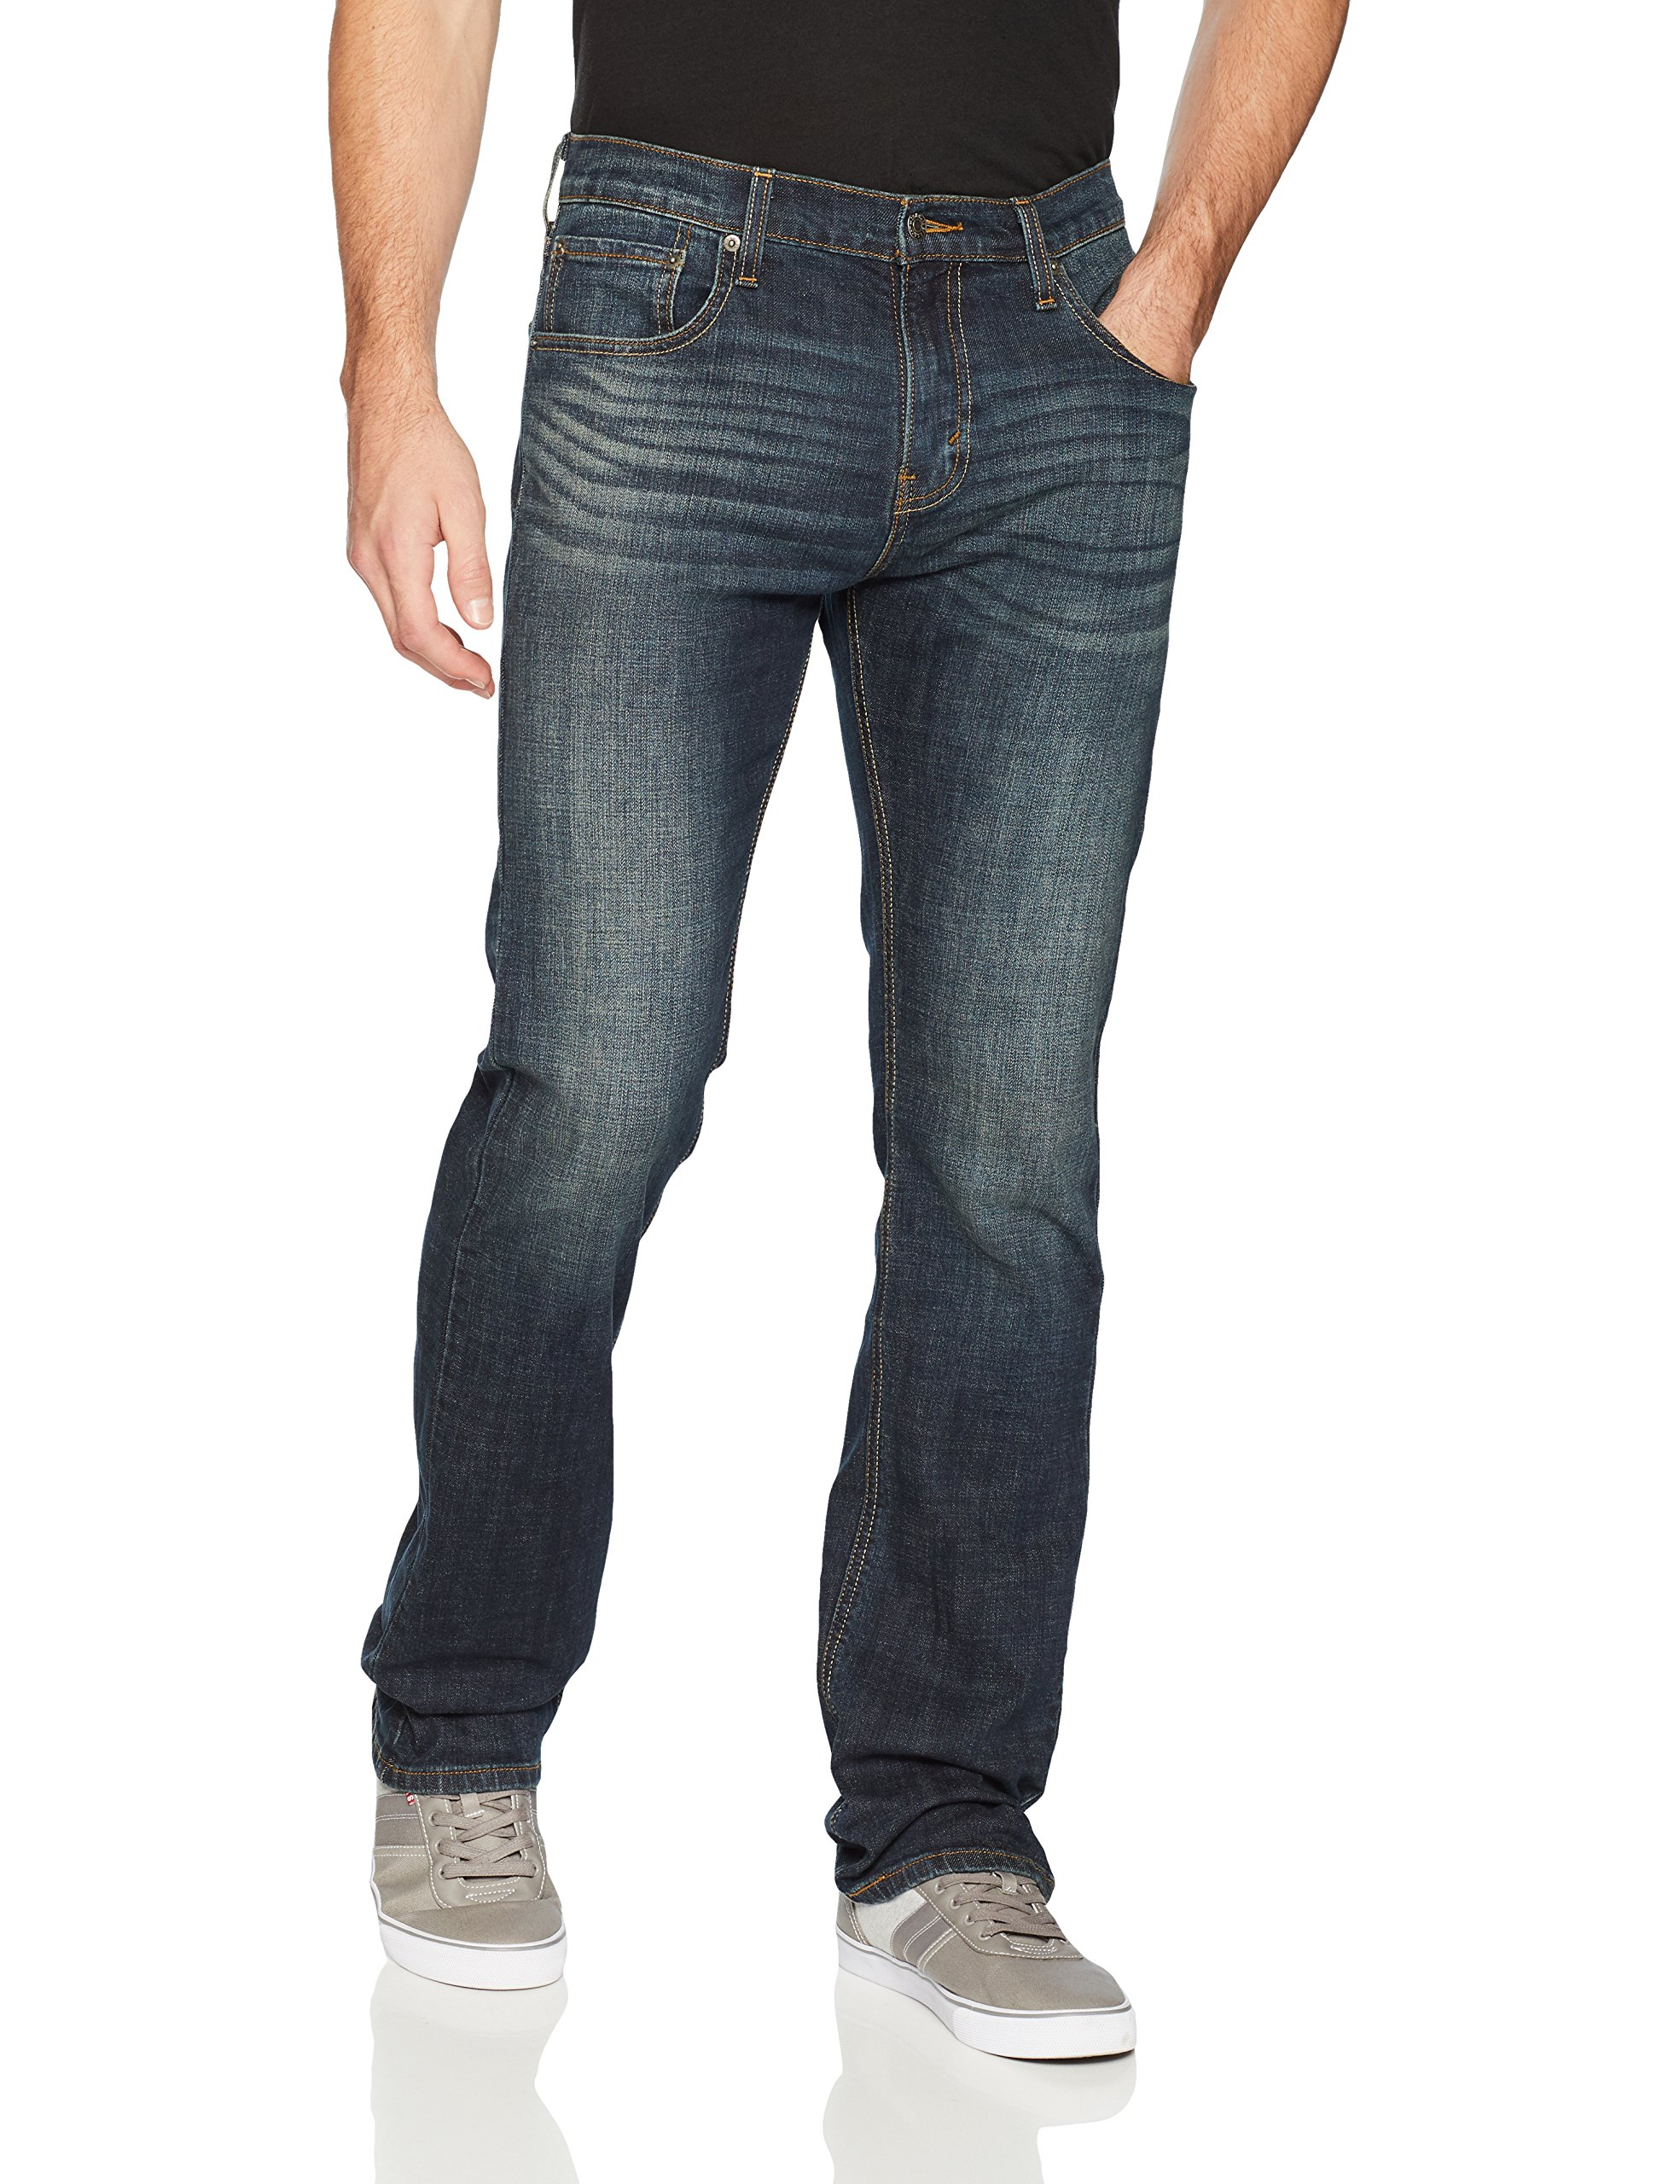 Signature by Levi Strauss & Co. Gold Label Men's Bootcut Fit Jeans, Fleetwood, 34W x 32L